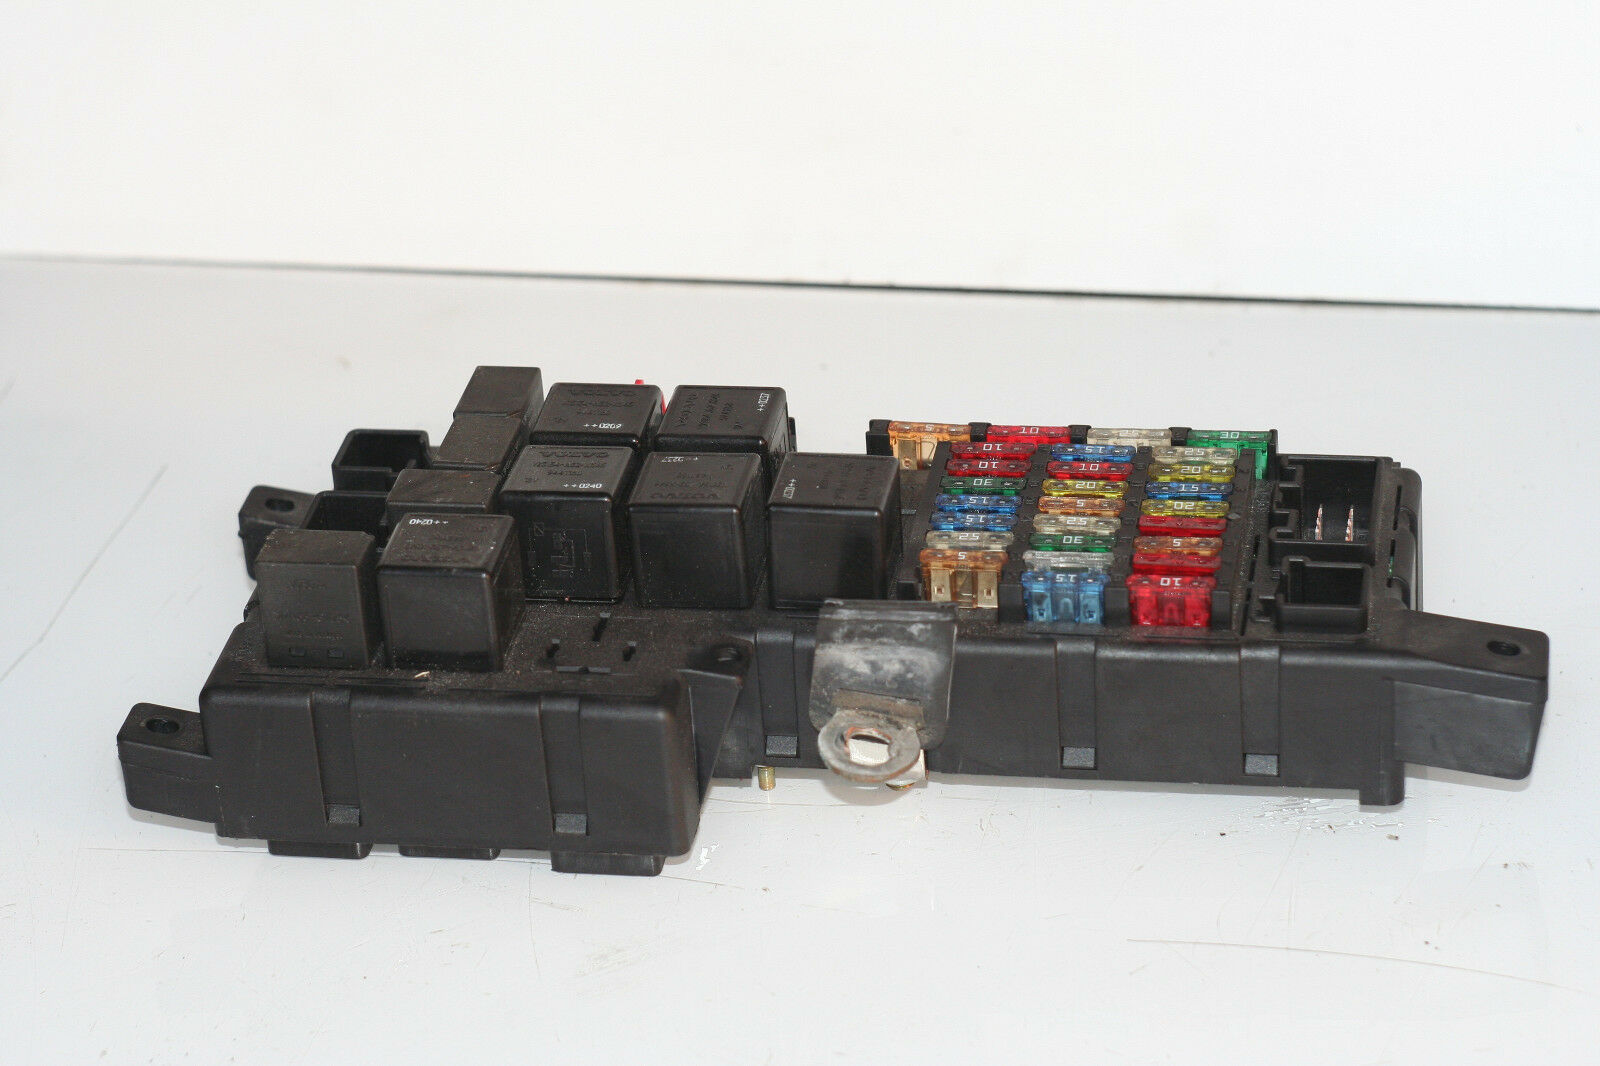 Volvo Xc90 02 05 24 D5 Fuse Box 8678449 2000 Picclick Uk In 1 Of 3only Available